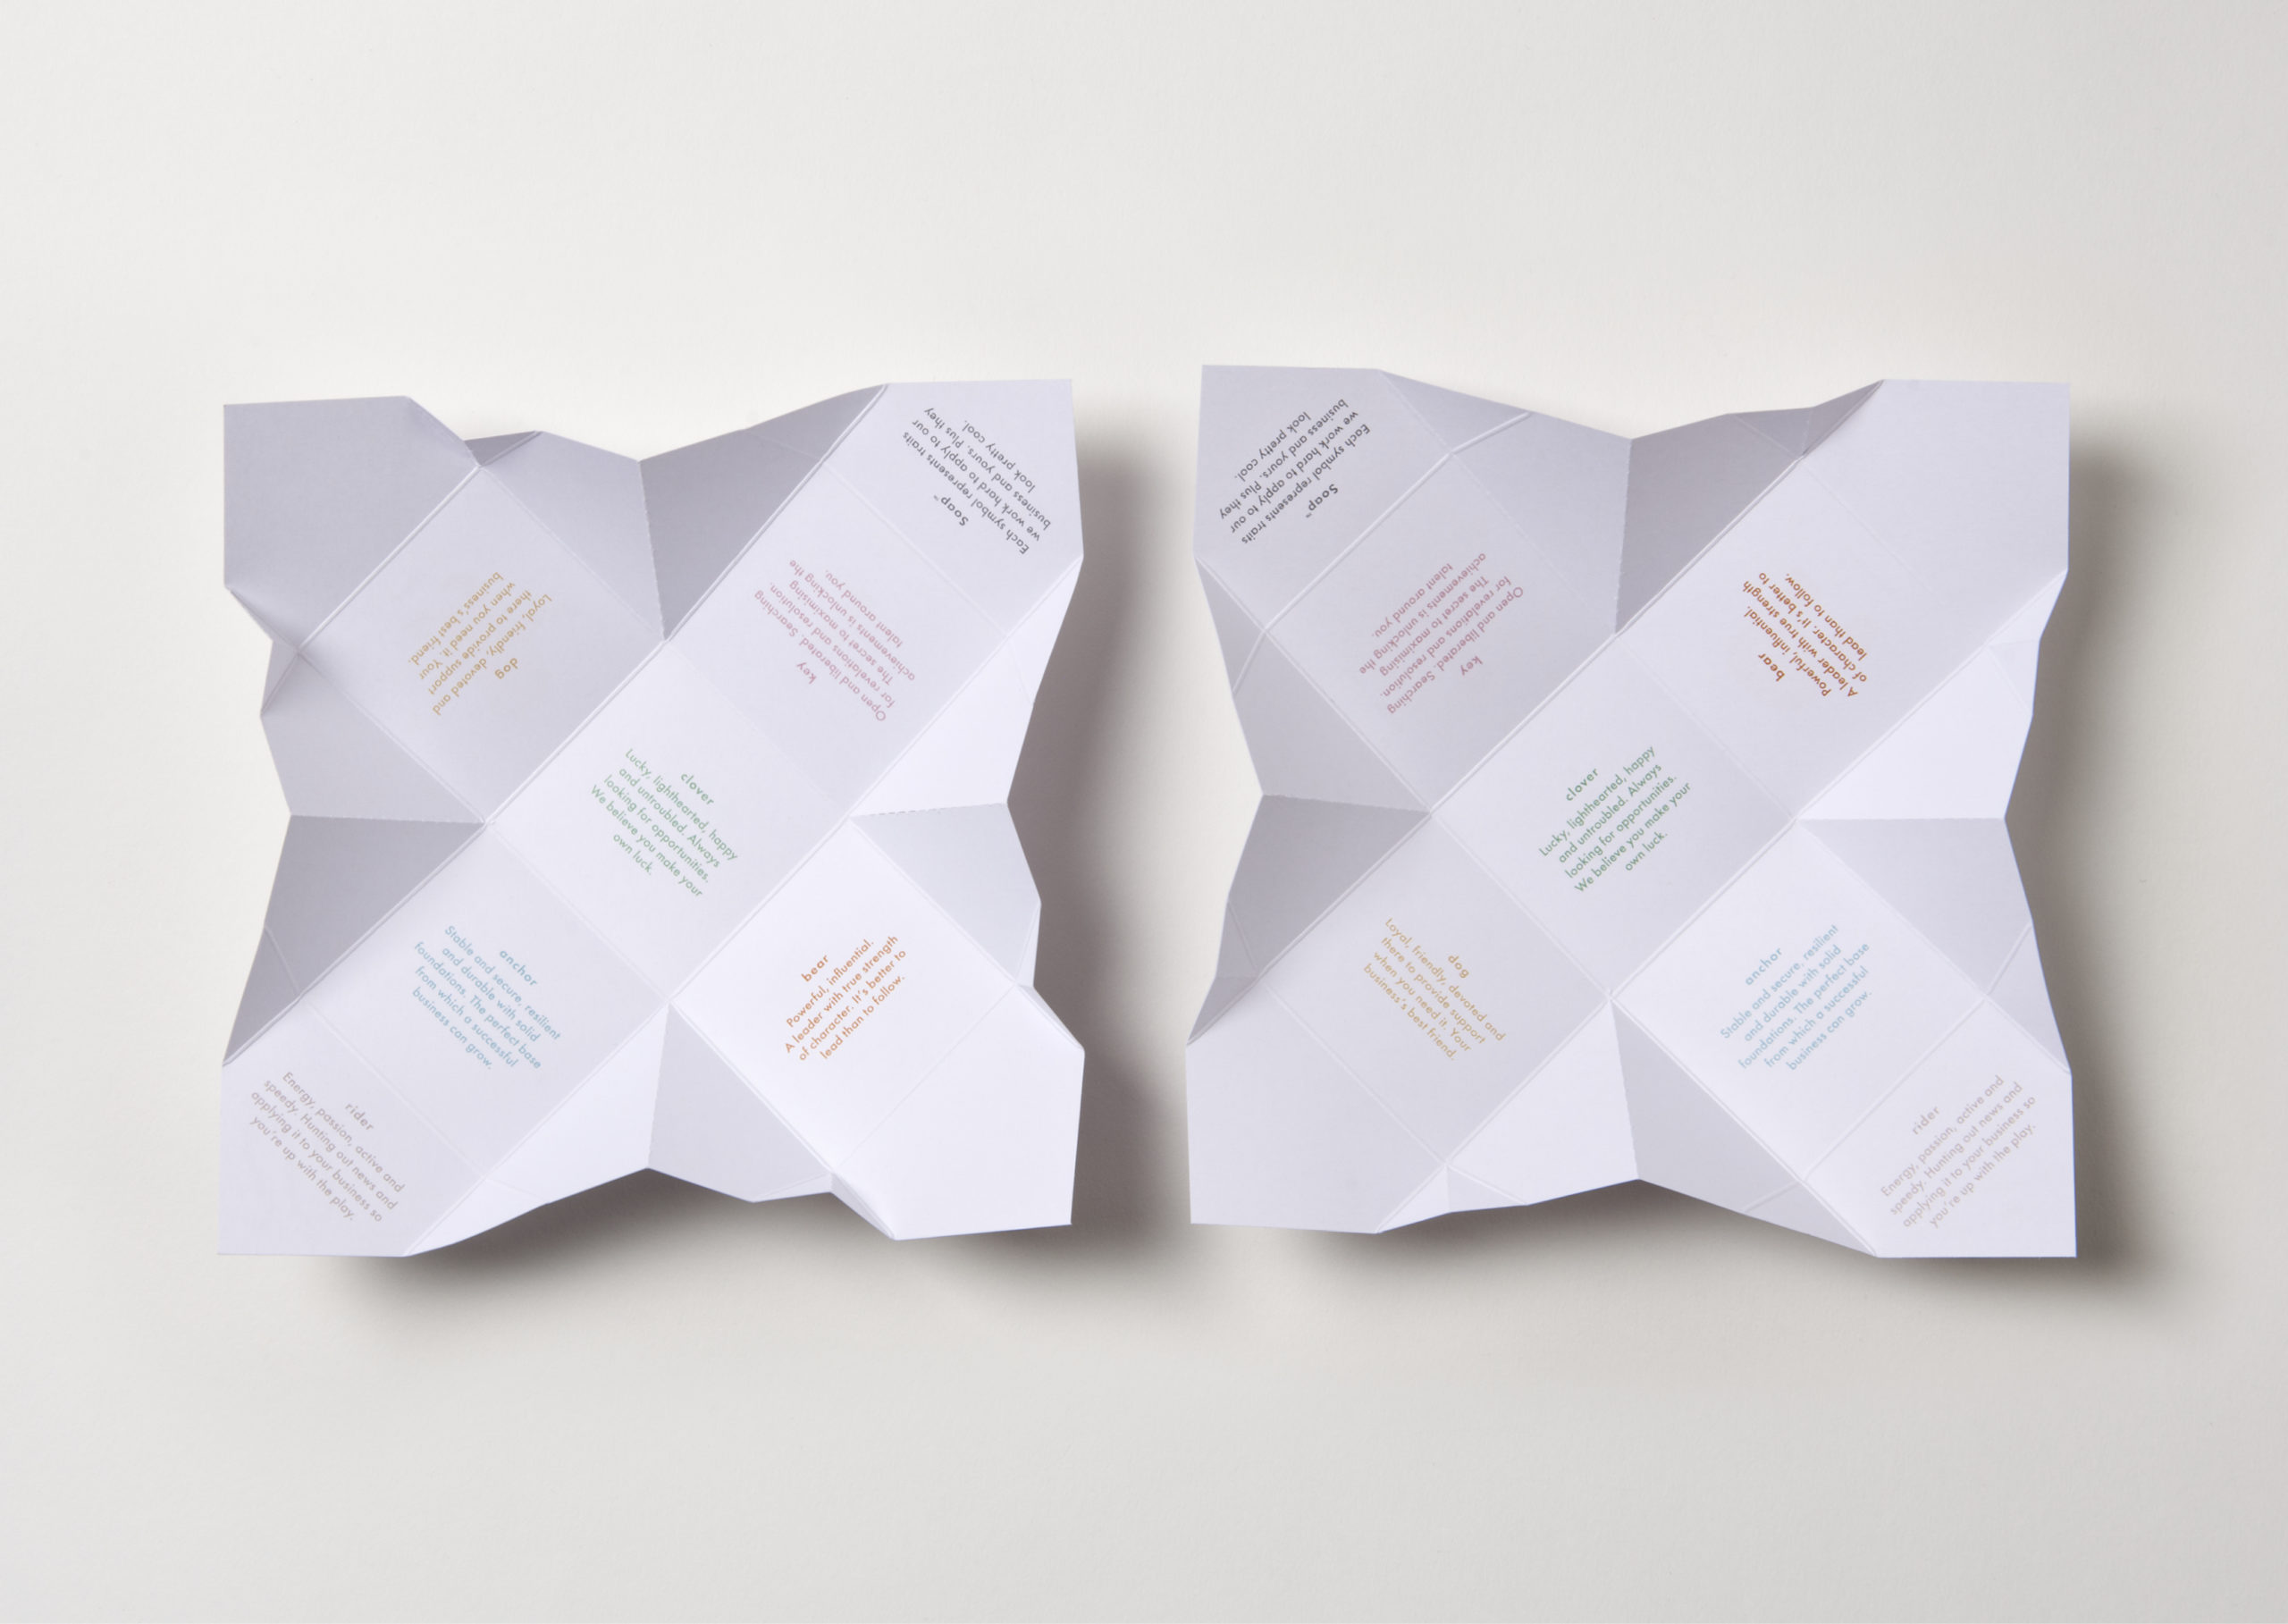 Two open origami folded Soap packaging designs showing fortune messages